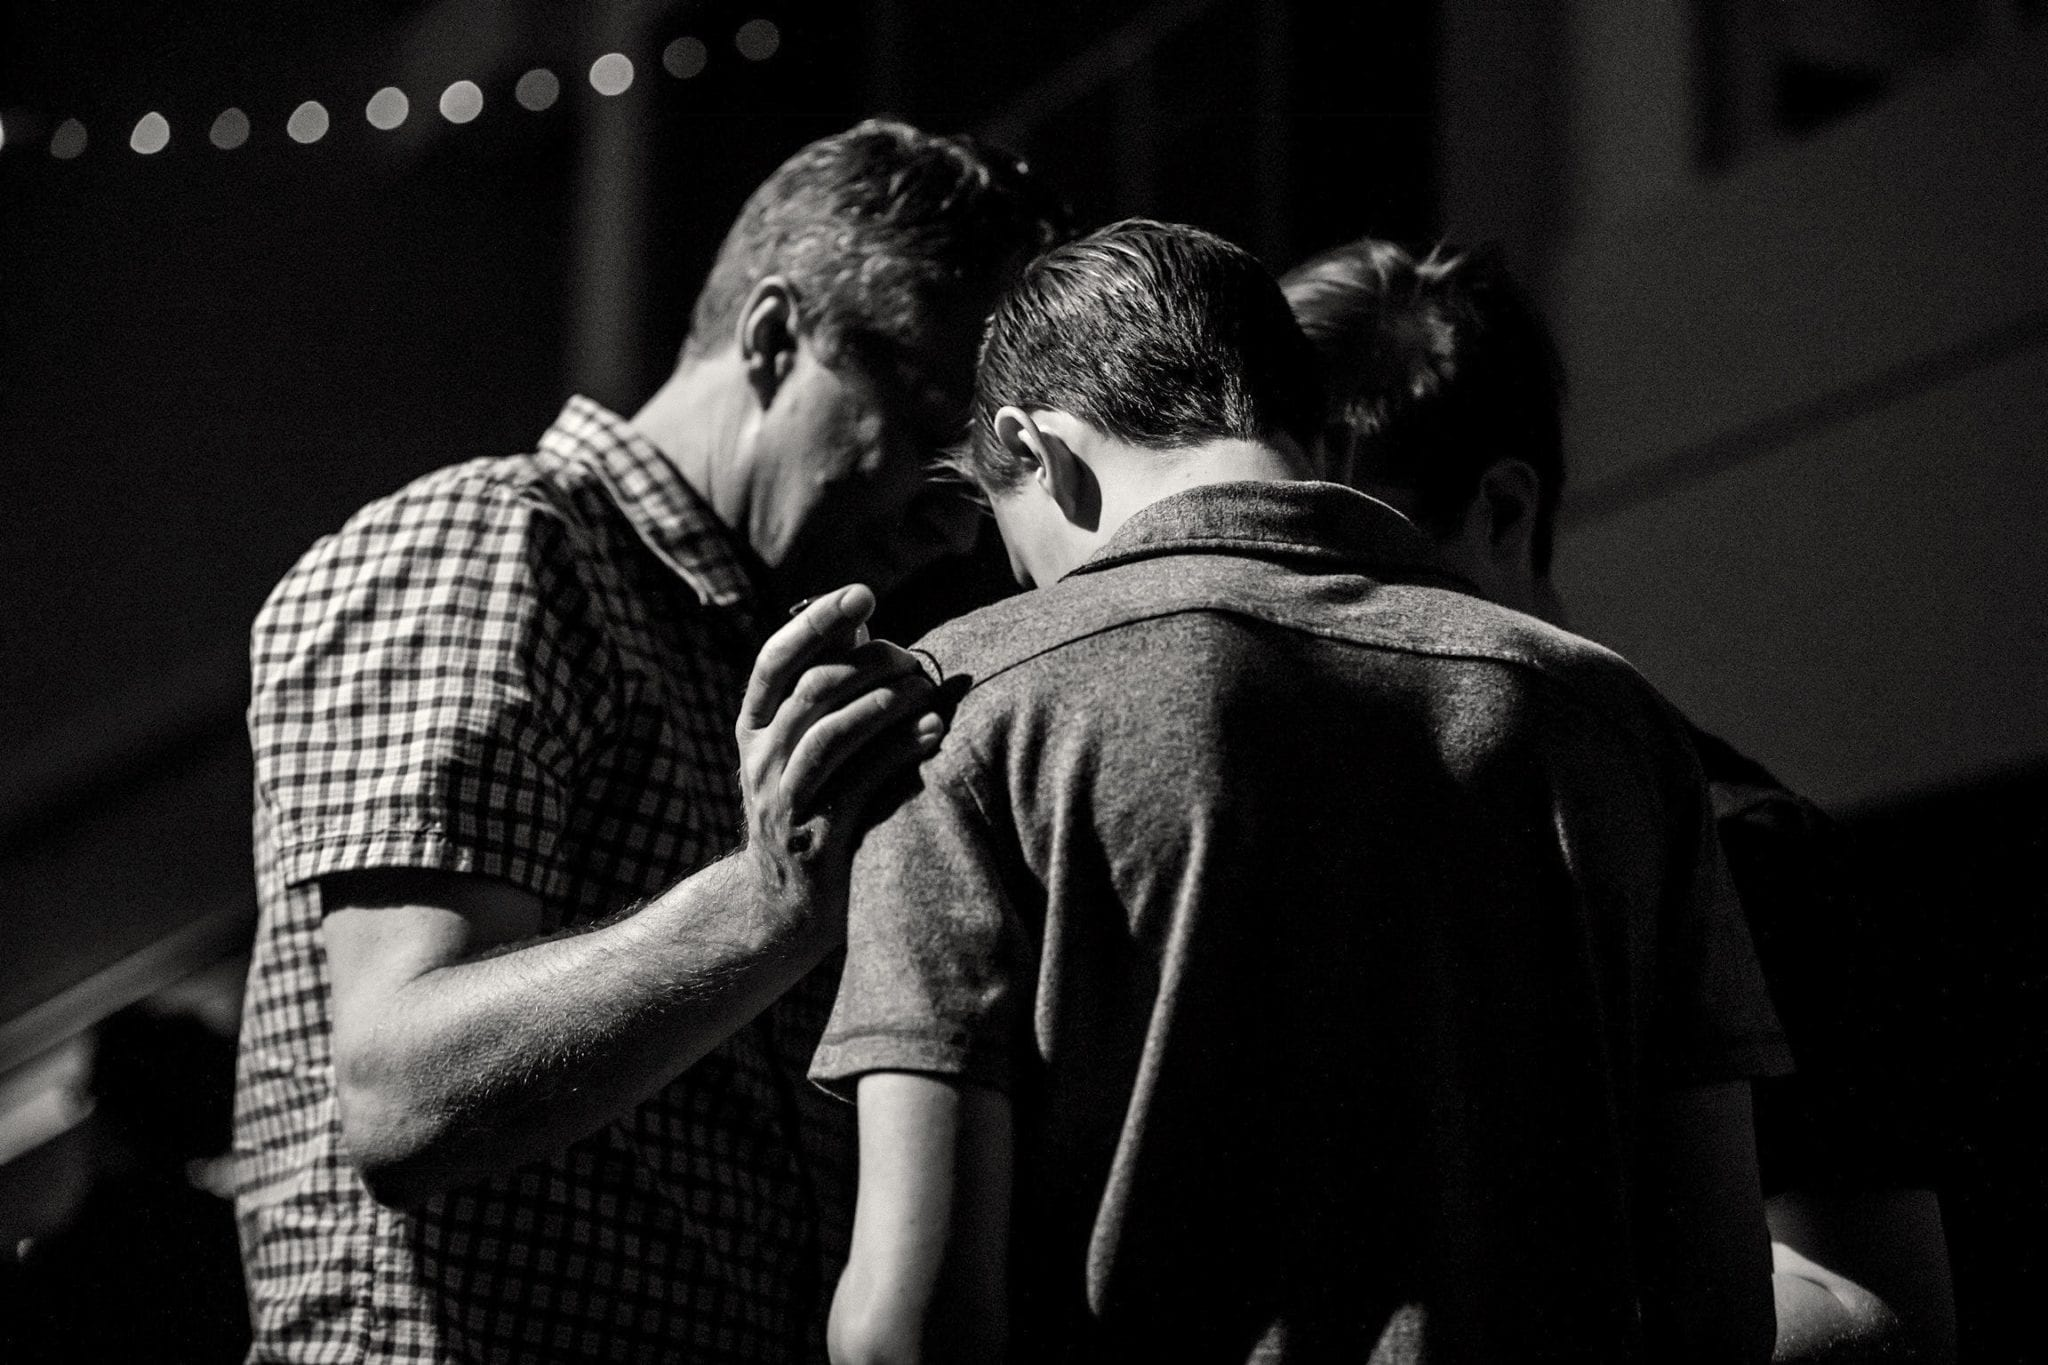 What We Get Wrong About Evangelism